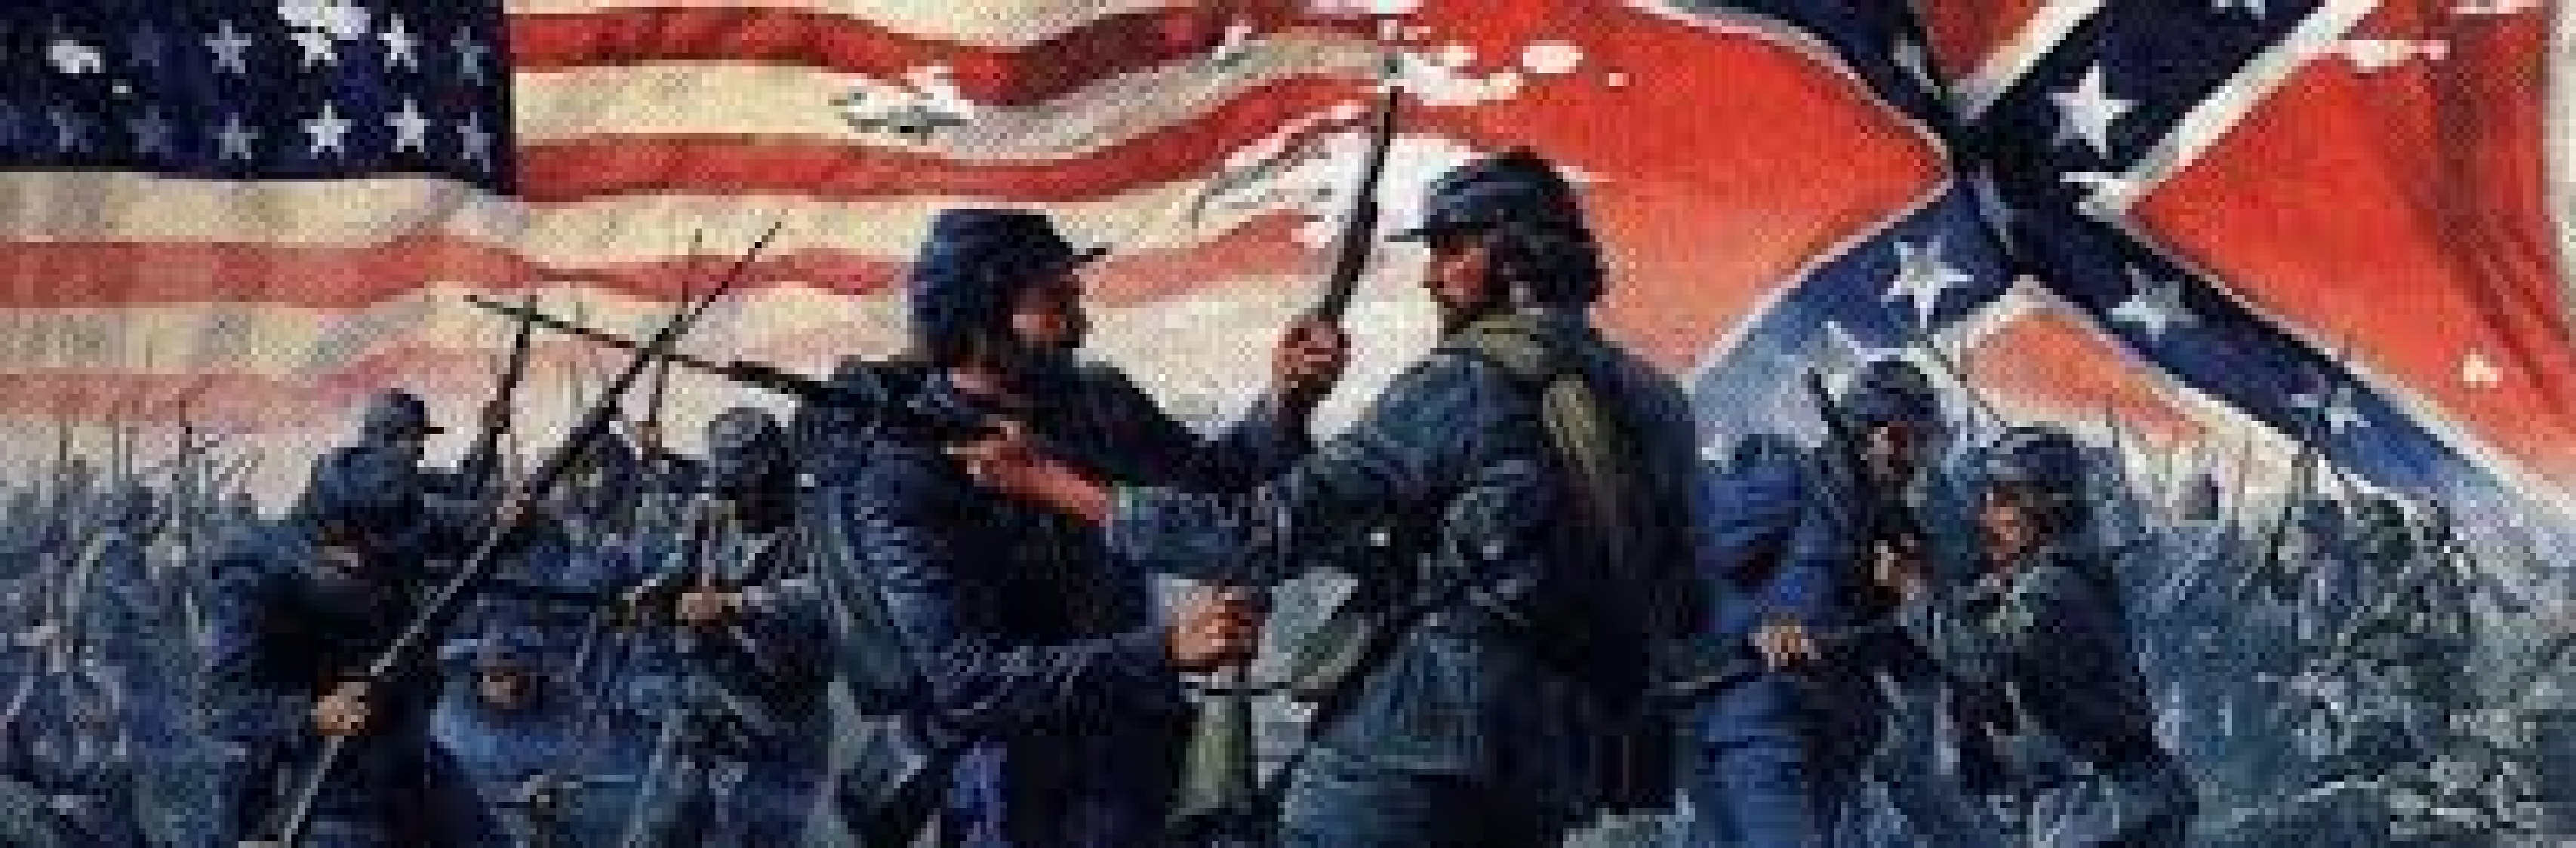 american history civil war Read all the essential details about american history index menu covering events & issues, slavery, american civil war, new deal, american west, biographies, political figures, civil rights, vietnam war, jfk, trade unions, artists.